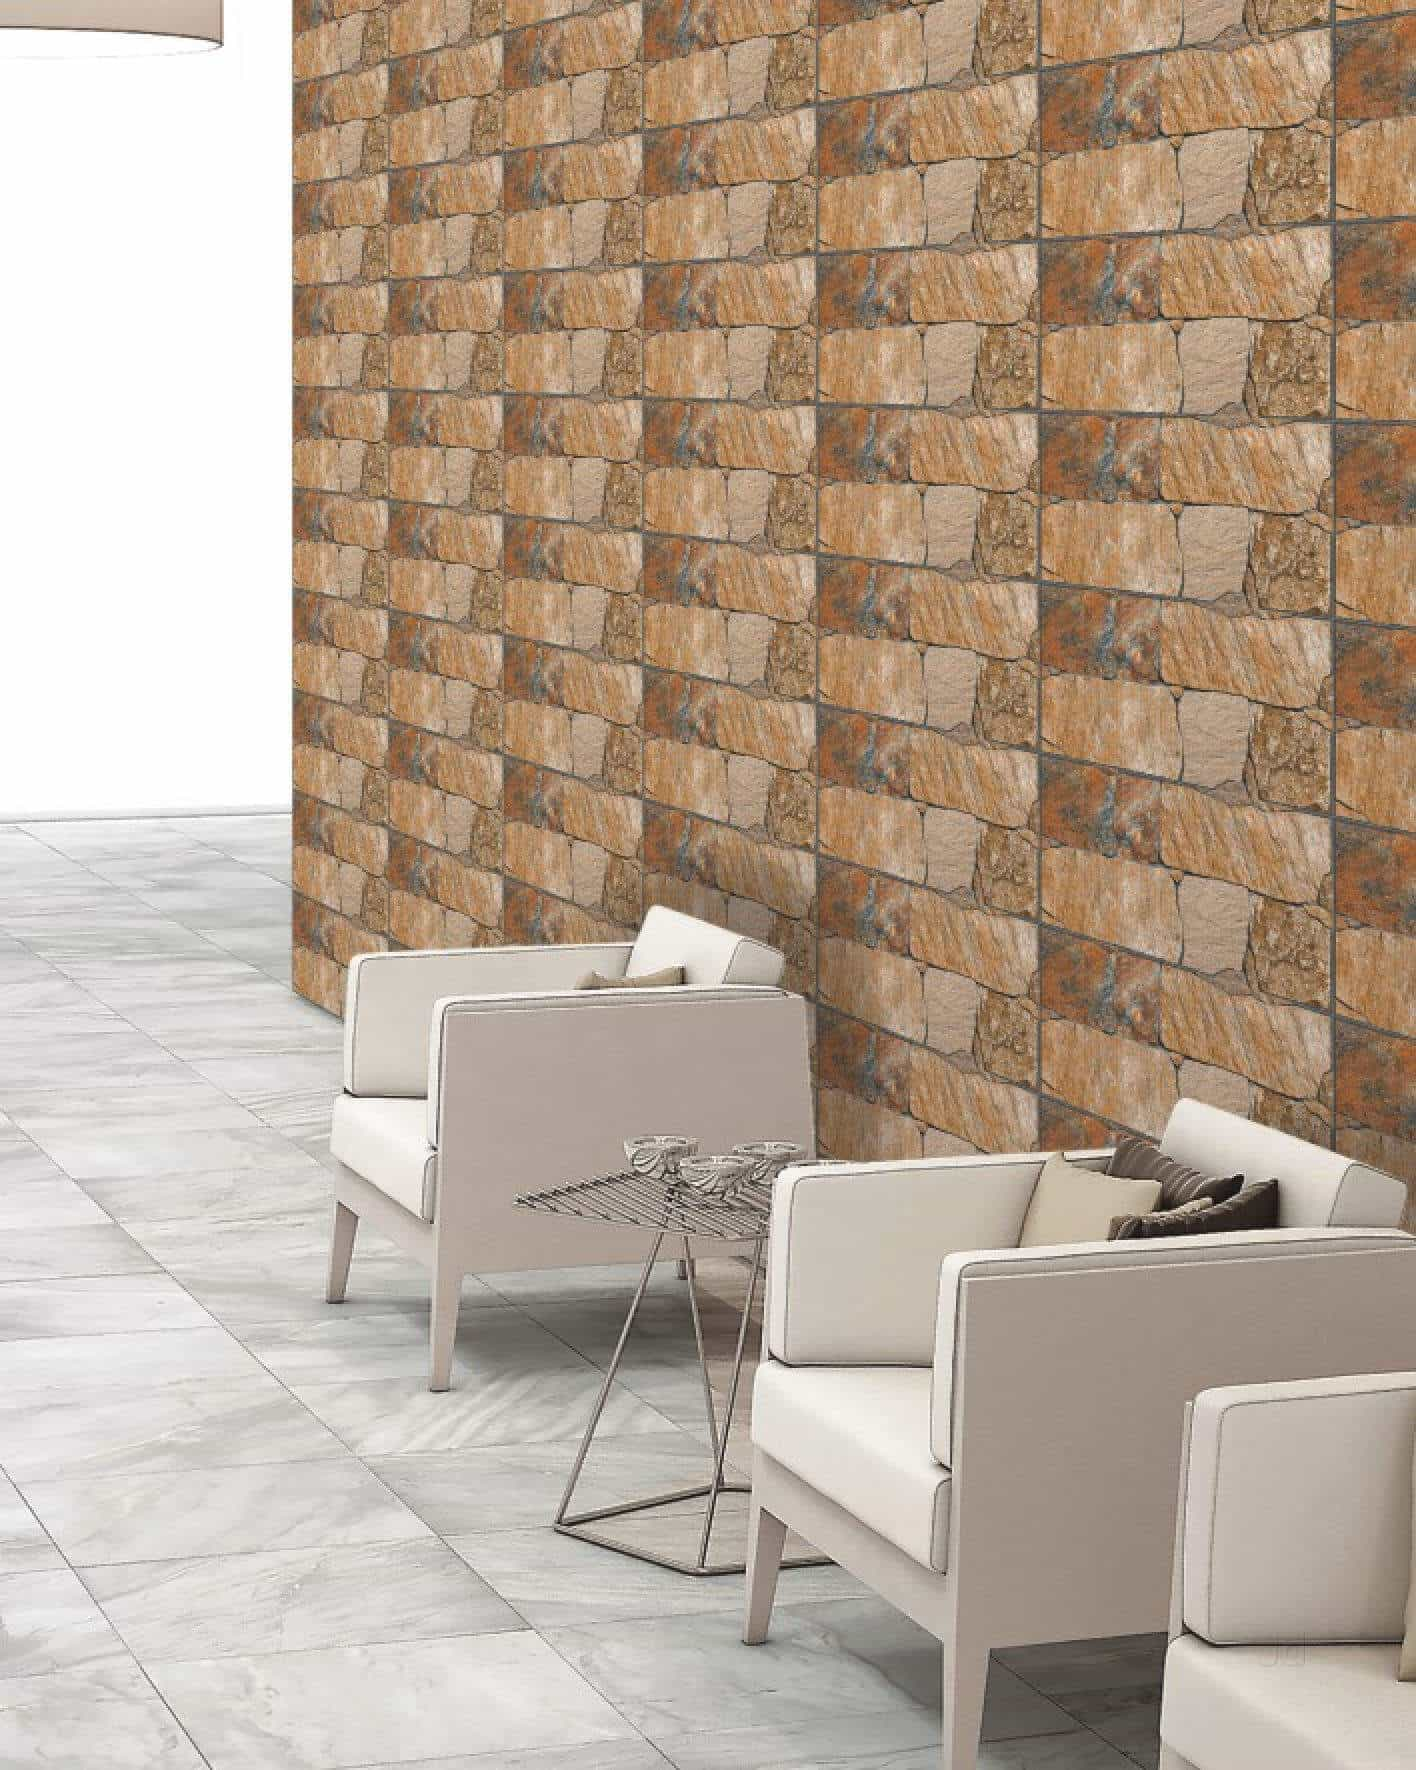 Ceramic tiles manufacturing process choice image tile flooring ceramic tiles manufacturer in malaysia images tile flooring floor tiles companies in india choice image tile doublecrazyfo Choice Image